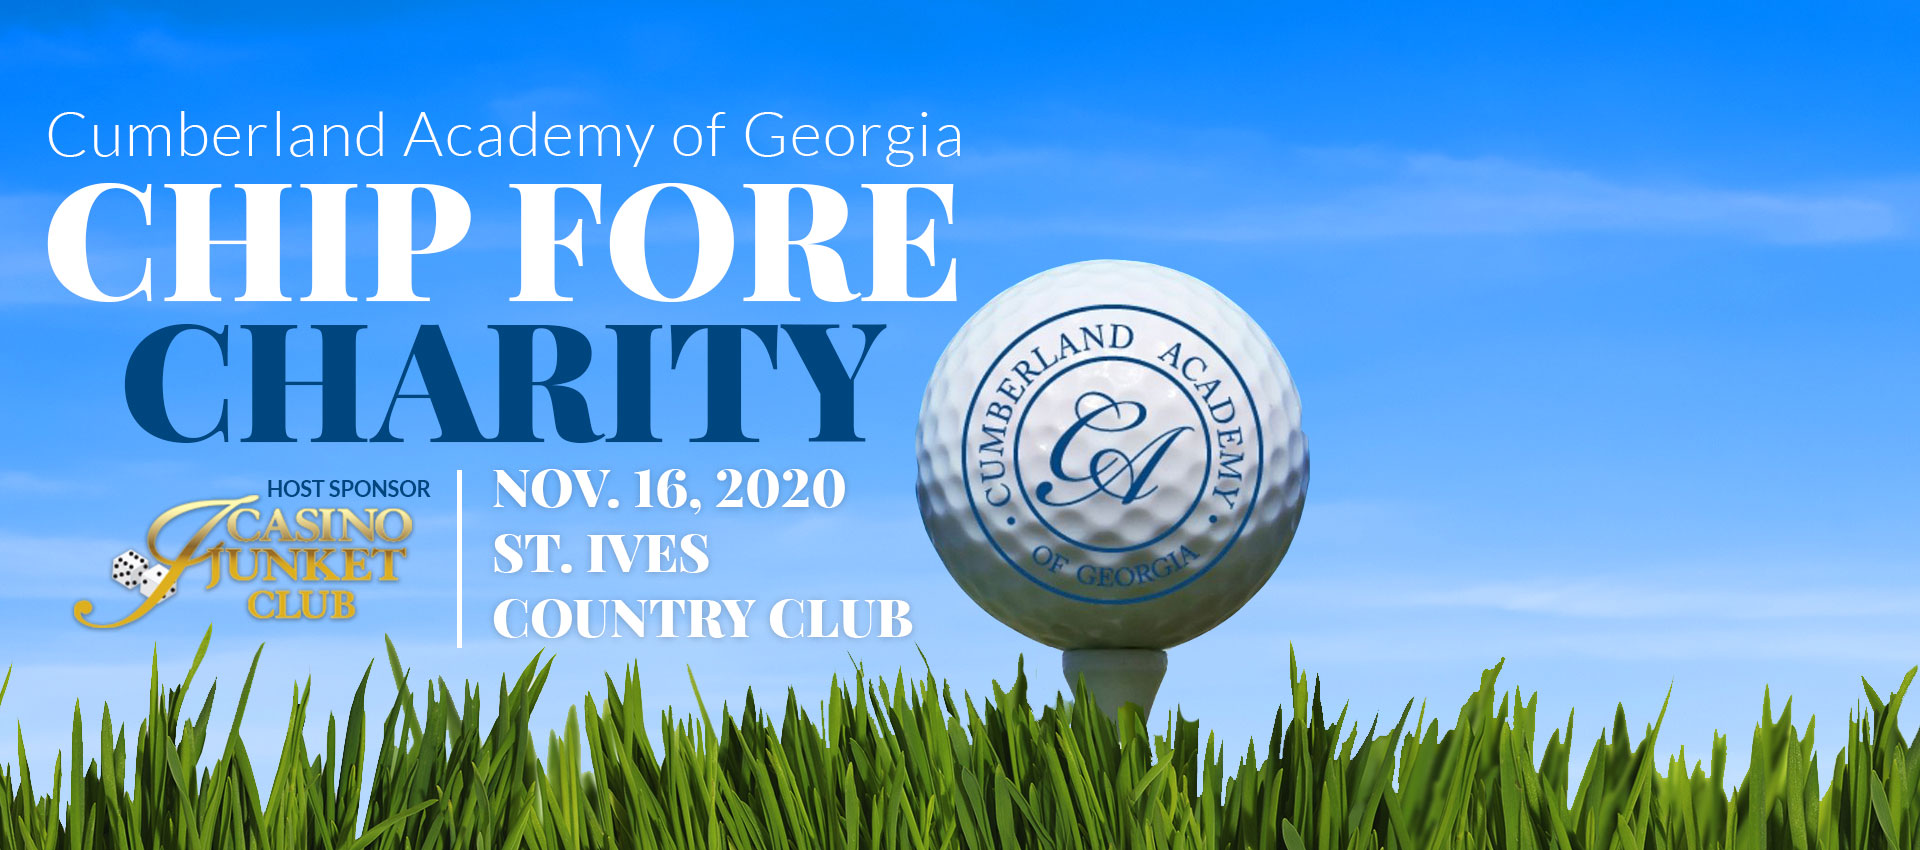 Chip Fore Charity with Cumberland Academy of Georgia